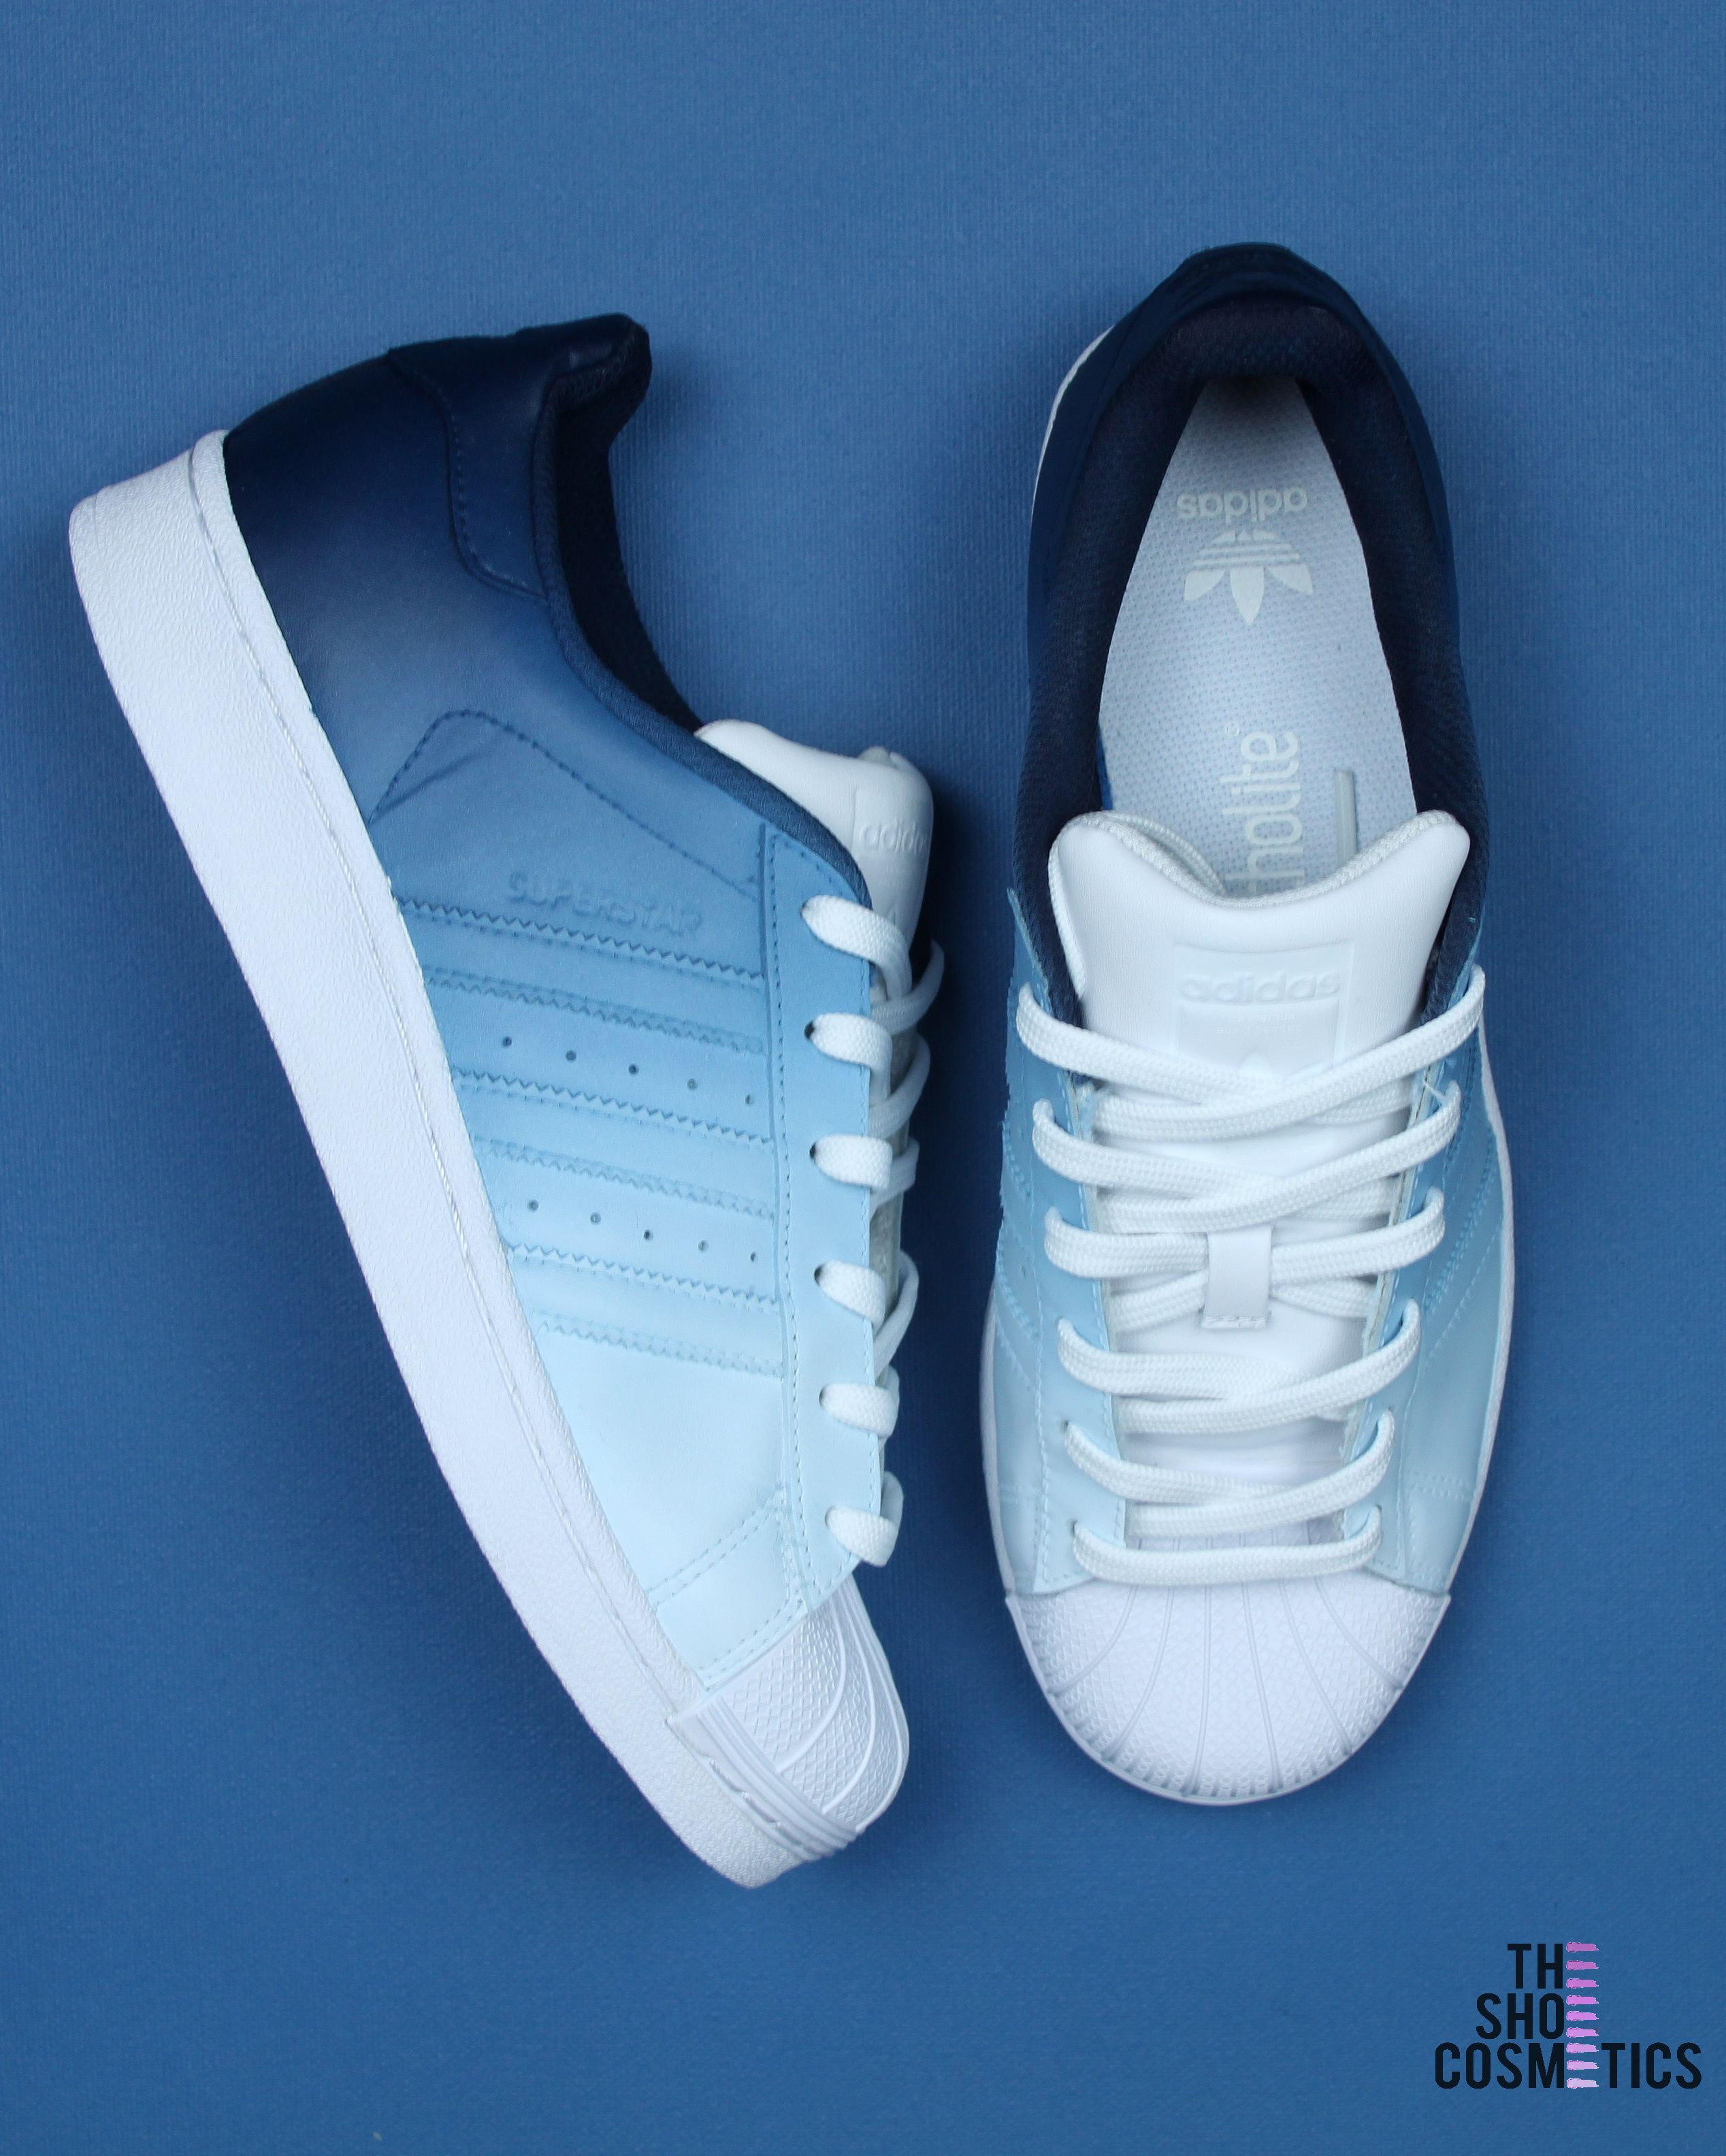 low priced 69ed7 b0f57 Explore our Navy Blue Adidas Superstar custom sneakers. Love custom painted  shoes  Then these custom Adidas shoes are perfect for you.